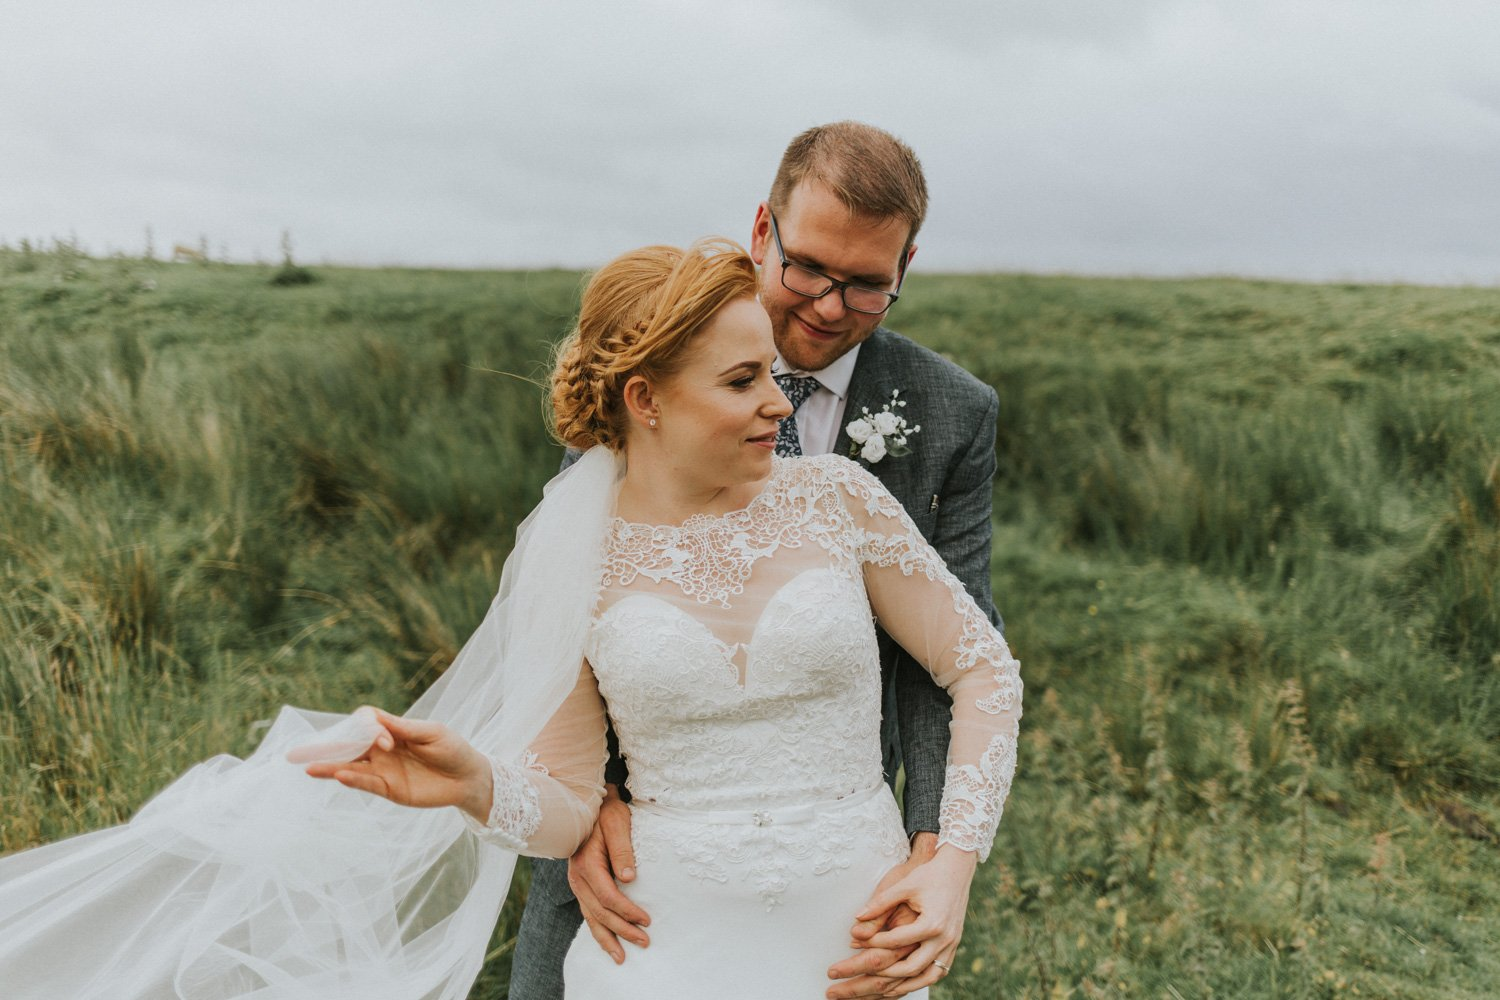 Diy Wedding Northumberland - North East Wedding Photographer